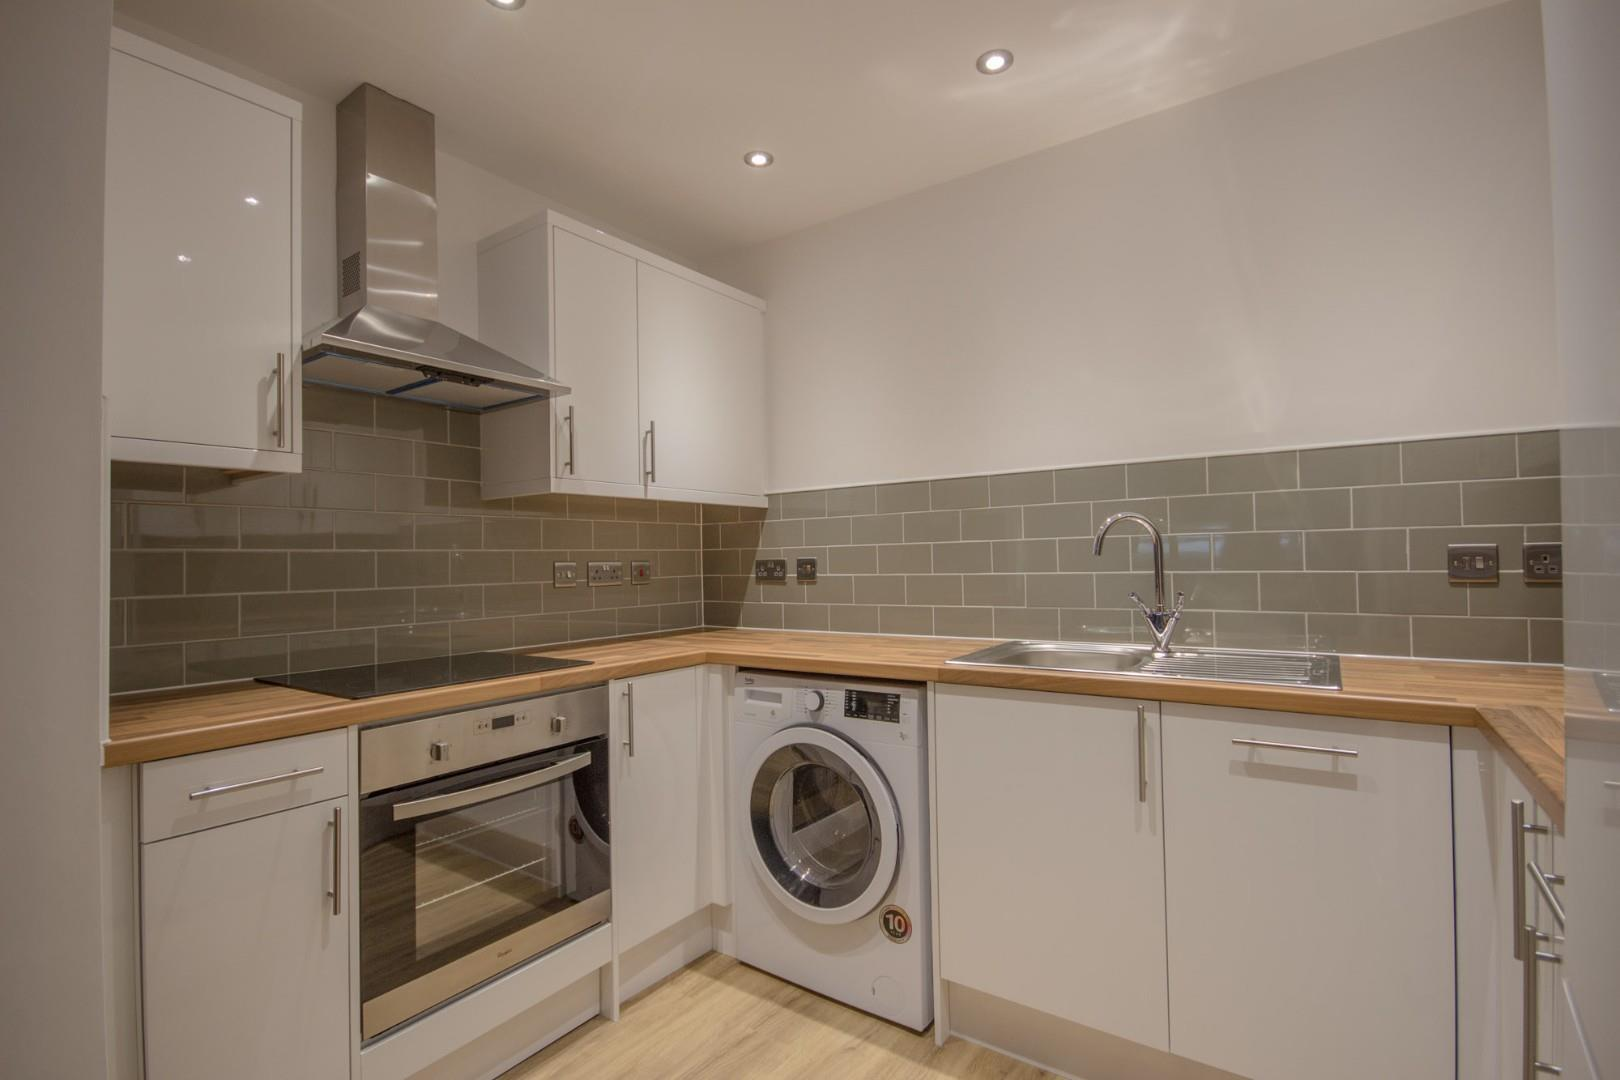 1 bed apartment to rent in Moor Street, Coventry, CV5